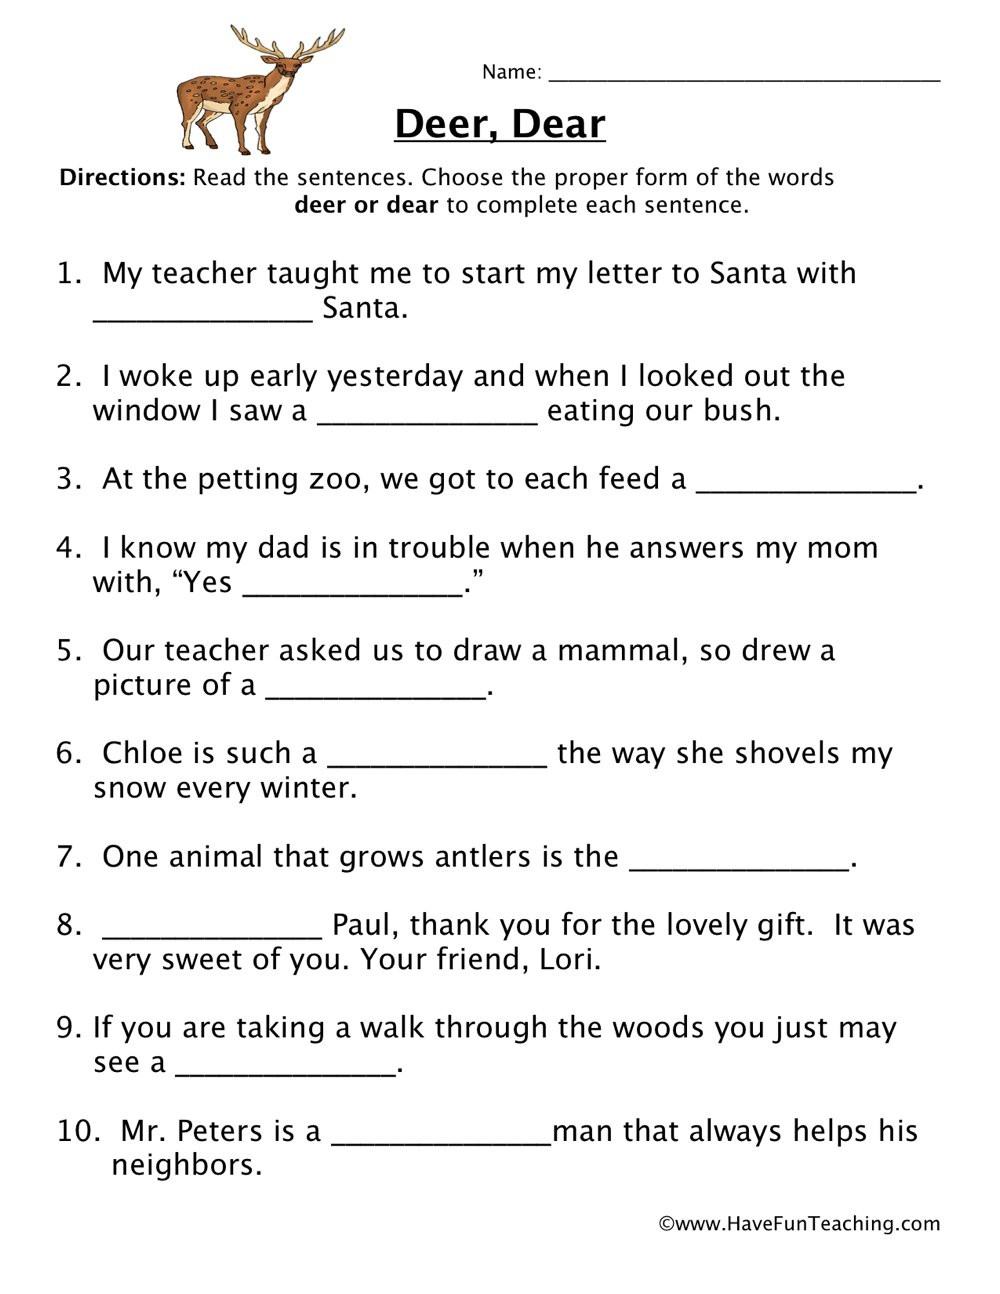 Homophones Worksheet 4th Grade Deer Dear Homophones Worksheet